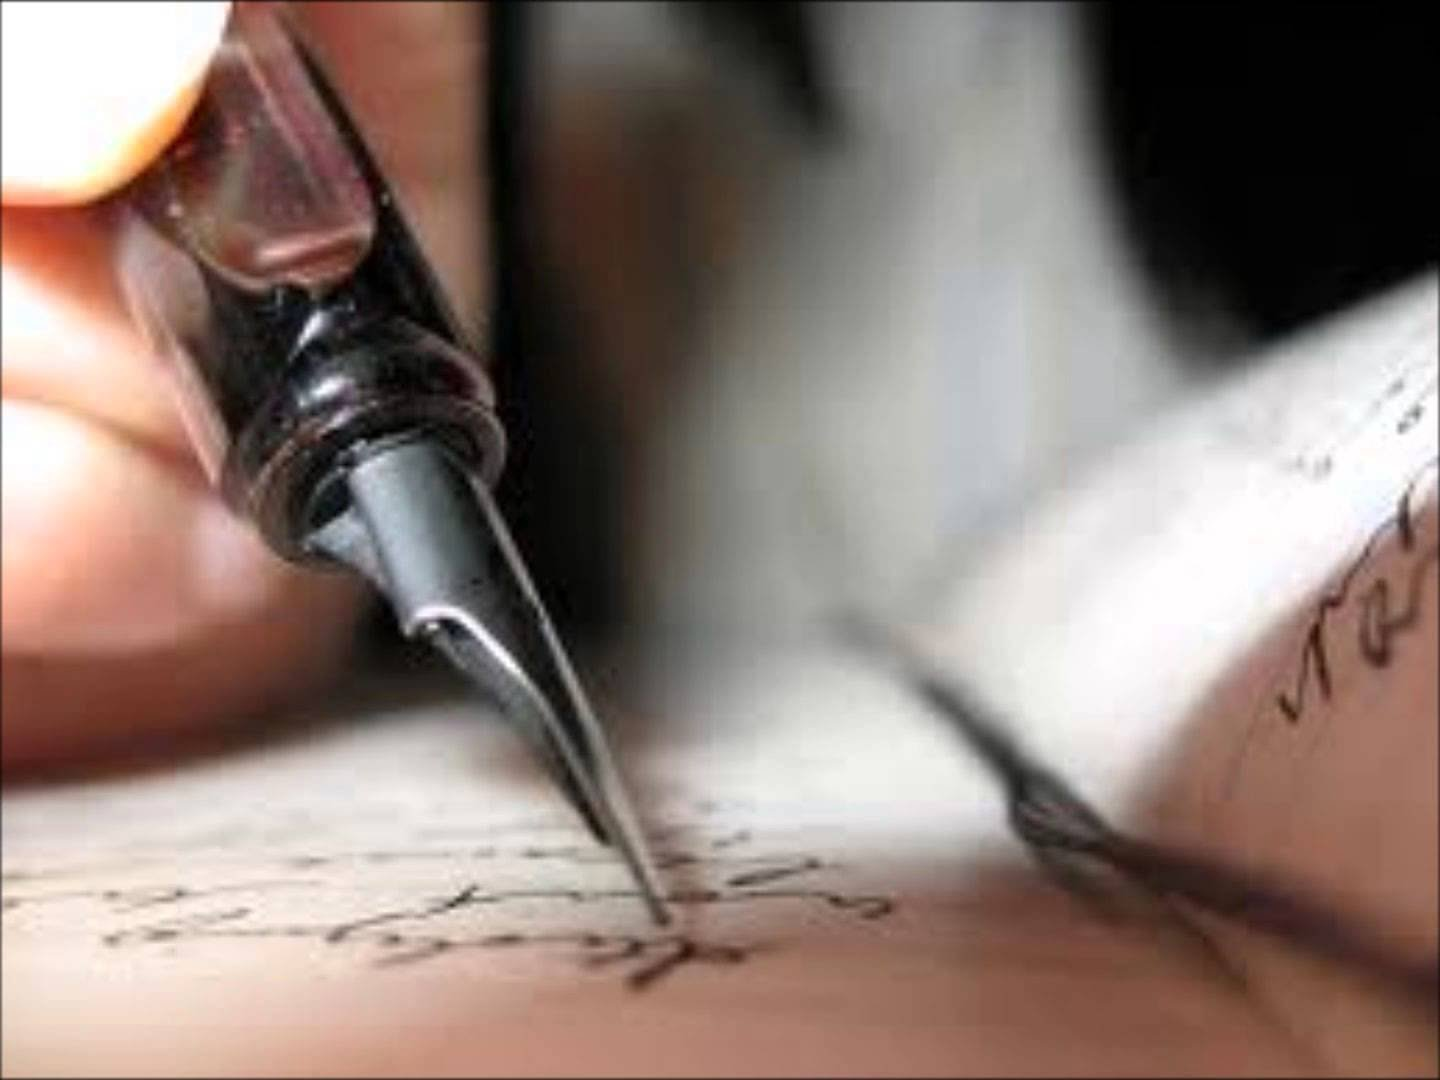 I will write 2 original and powerful 500 word articles for 5